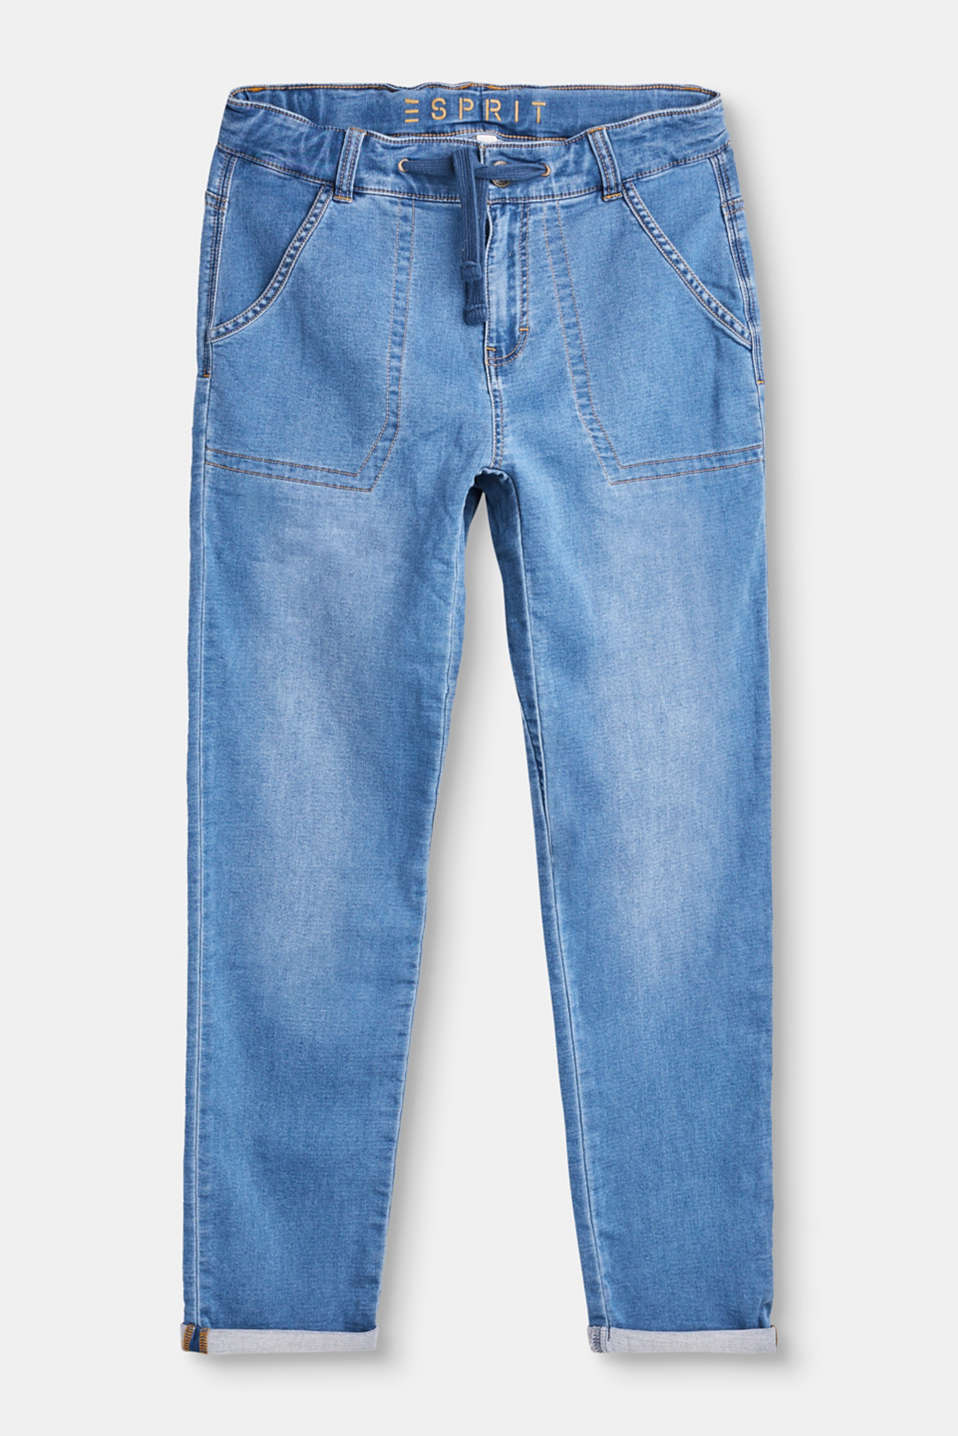 Esprit - Jeans casual in morbido denim